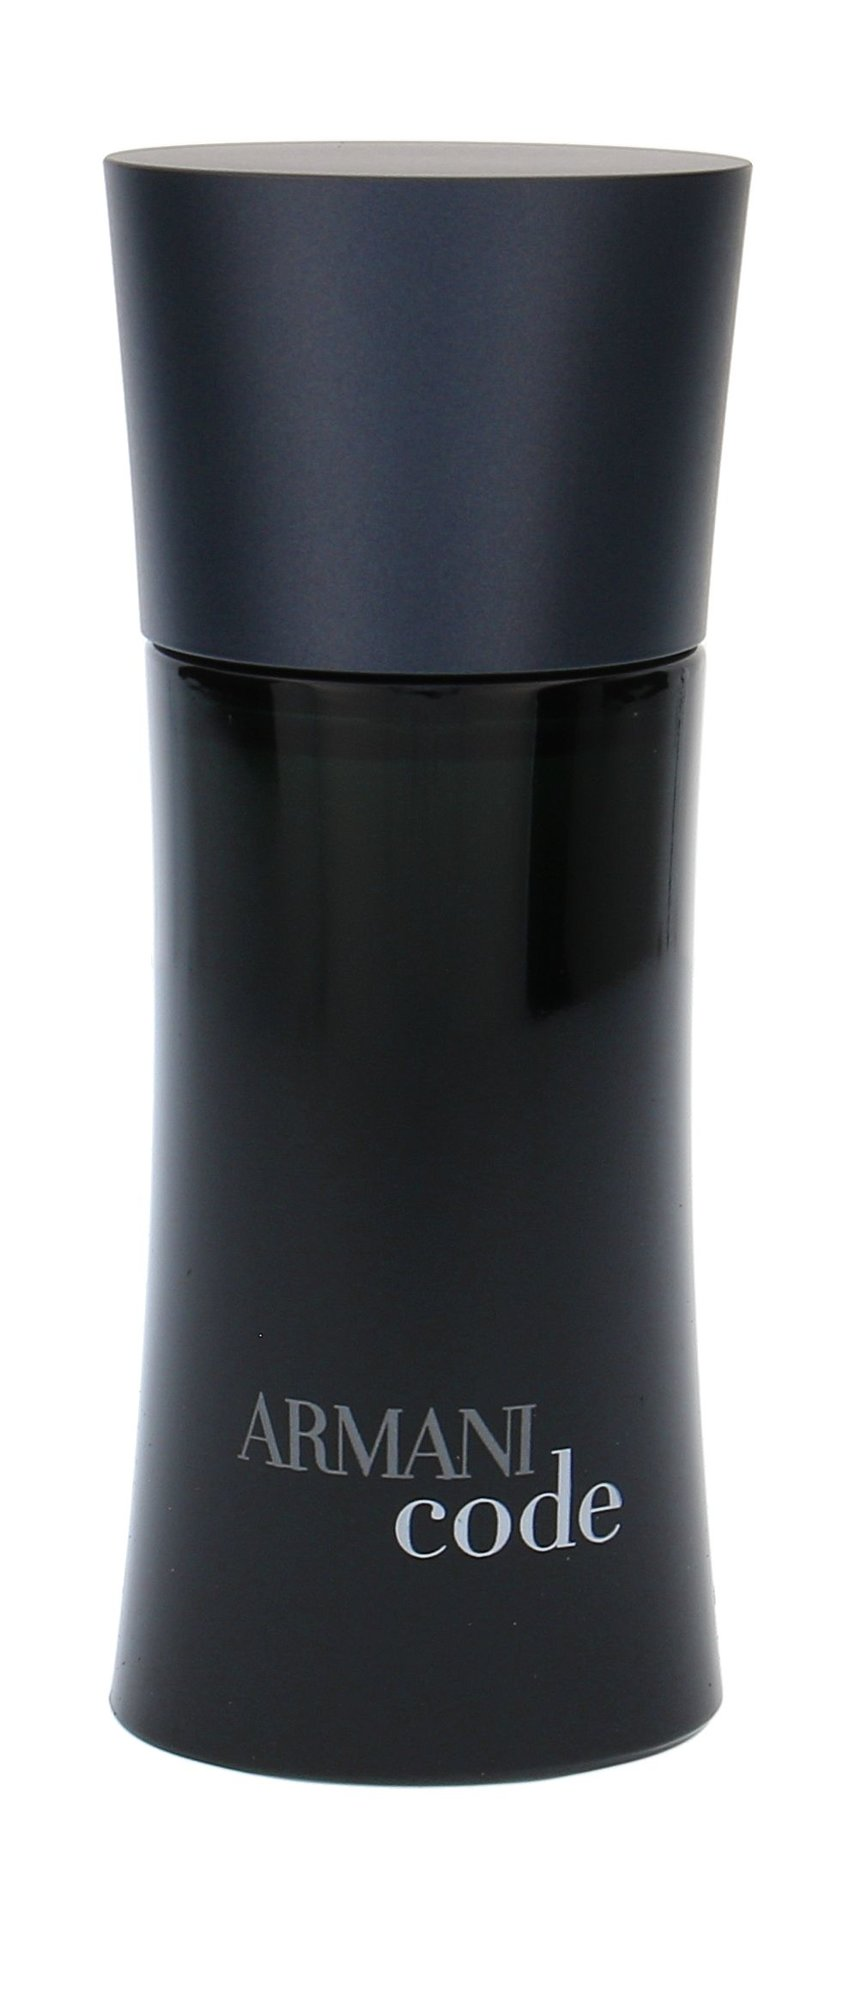 Kvepalai 8 Puslapis Groiosalalt Parfum Original Antonio Banderas Radiant Seduction In Black Man Edt 100ml Giorgio Armani Code